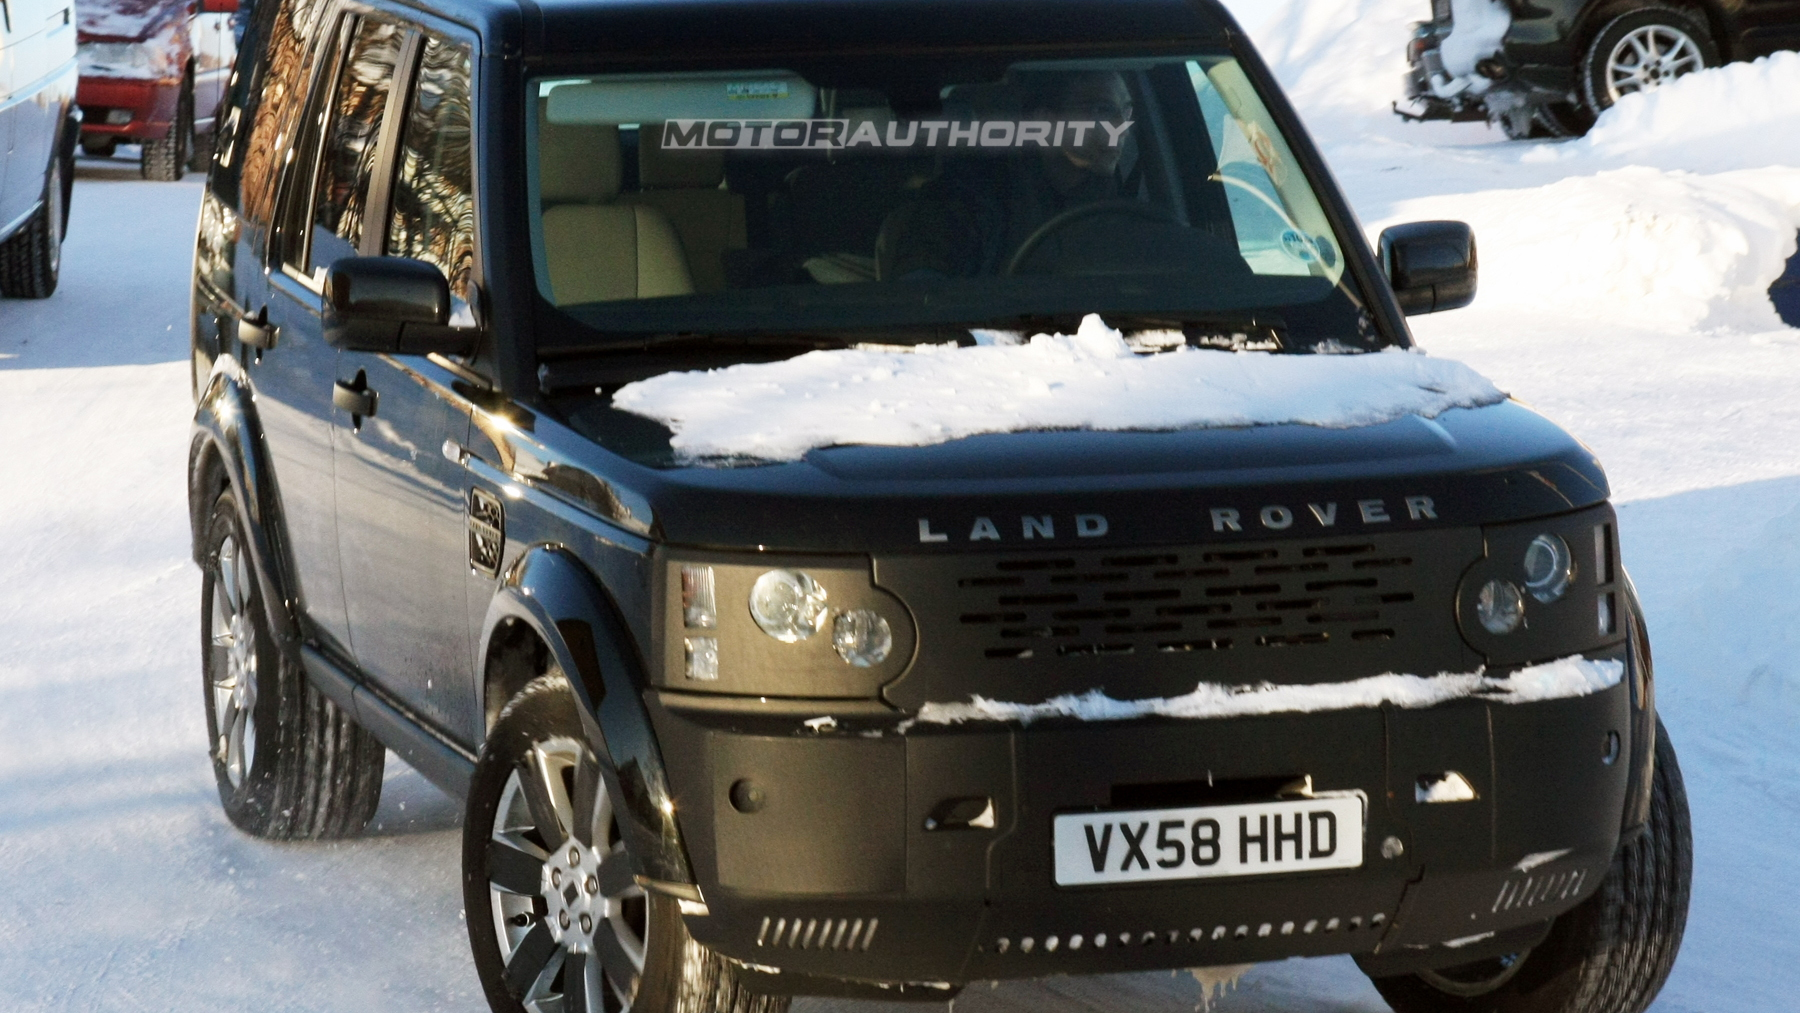 2010 land rover discovery facelift spy shots february 001